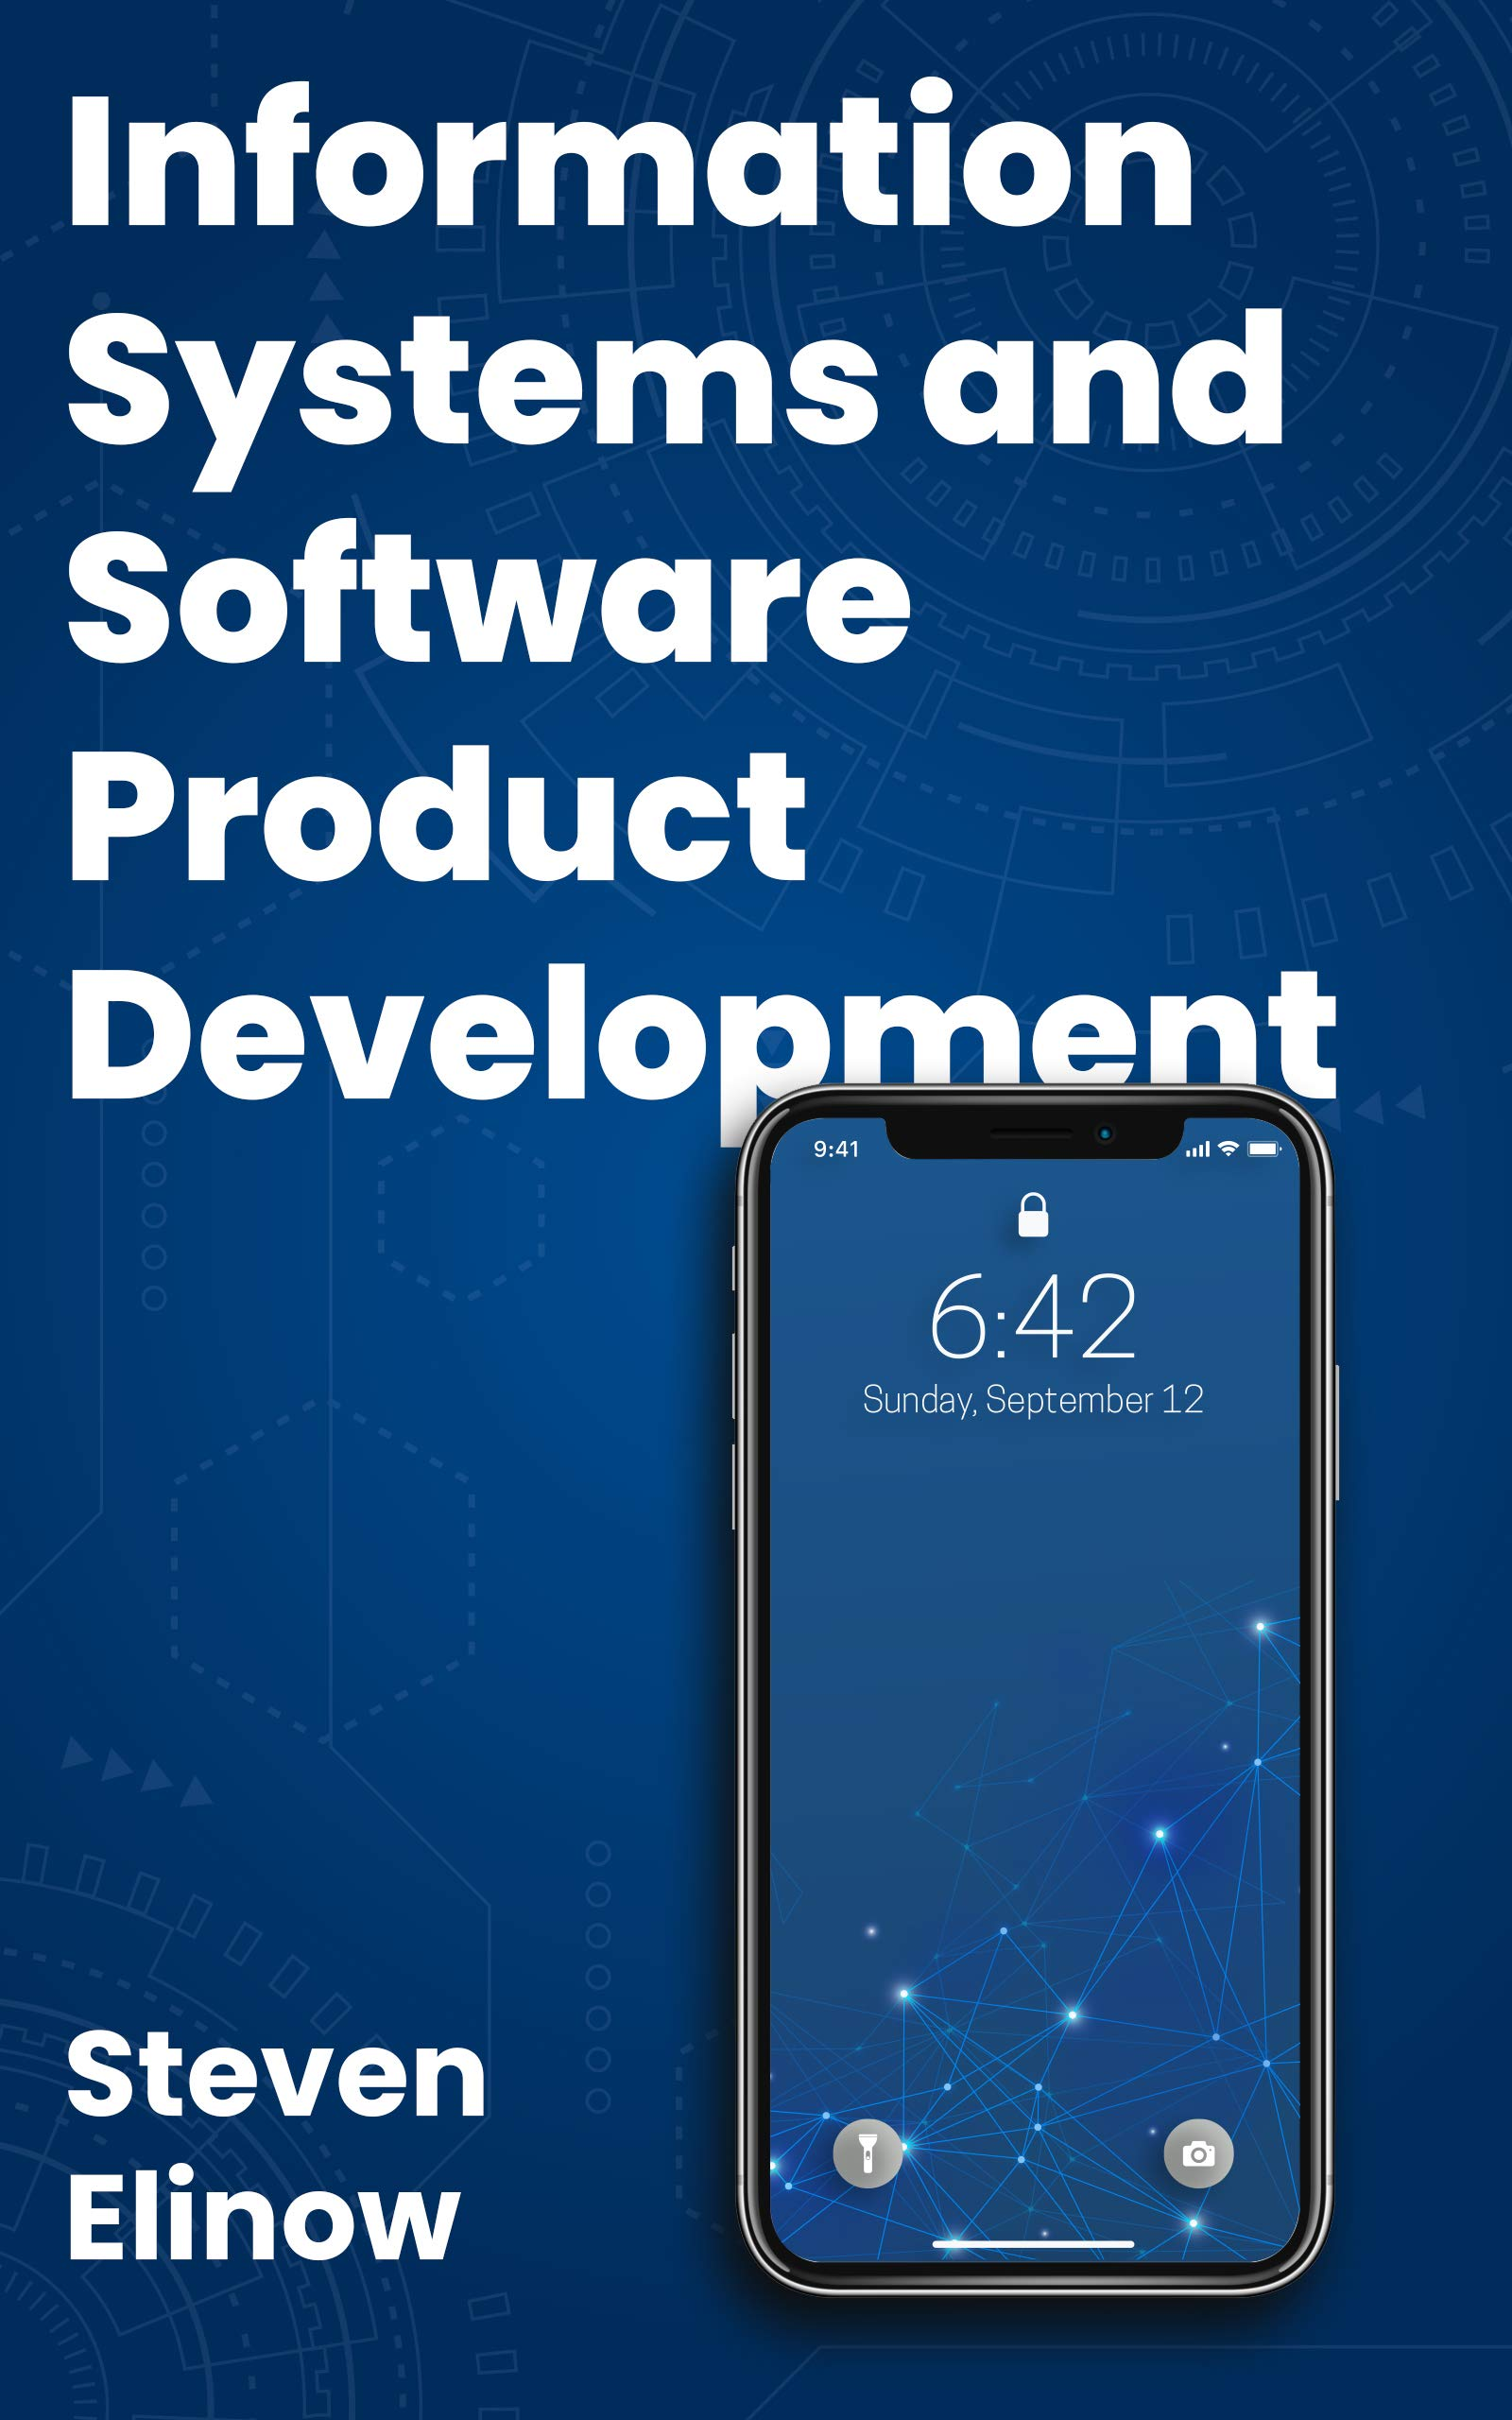 Information Systems and Software Product Development